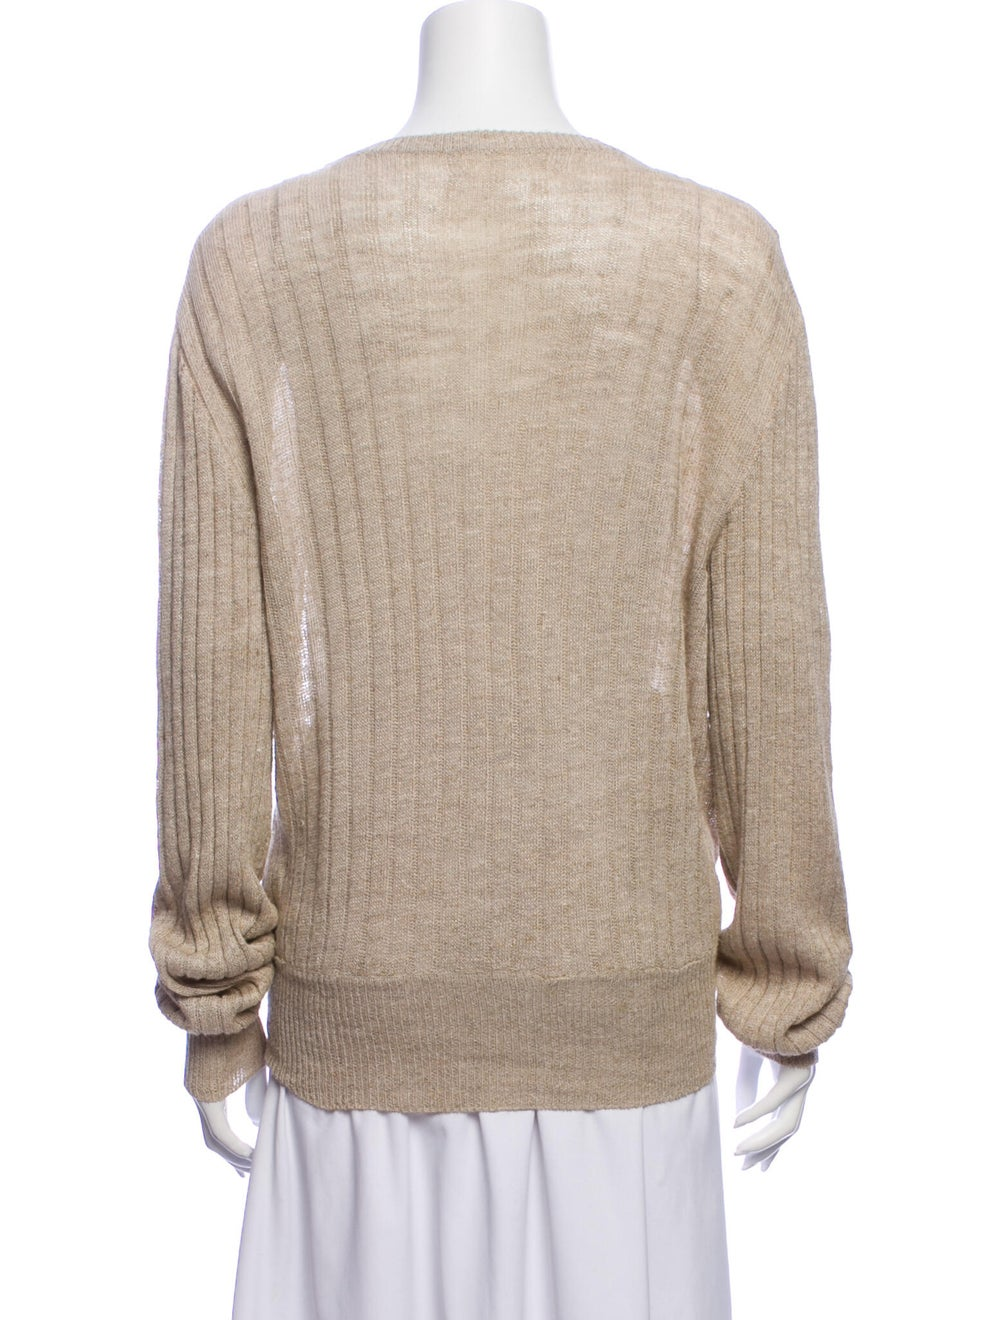 Gucci Vintage 1970's Sweater - image 3